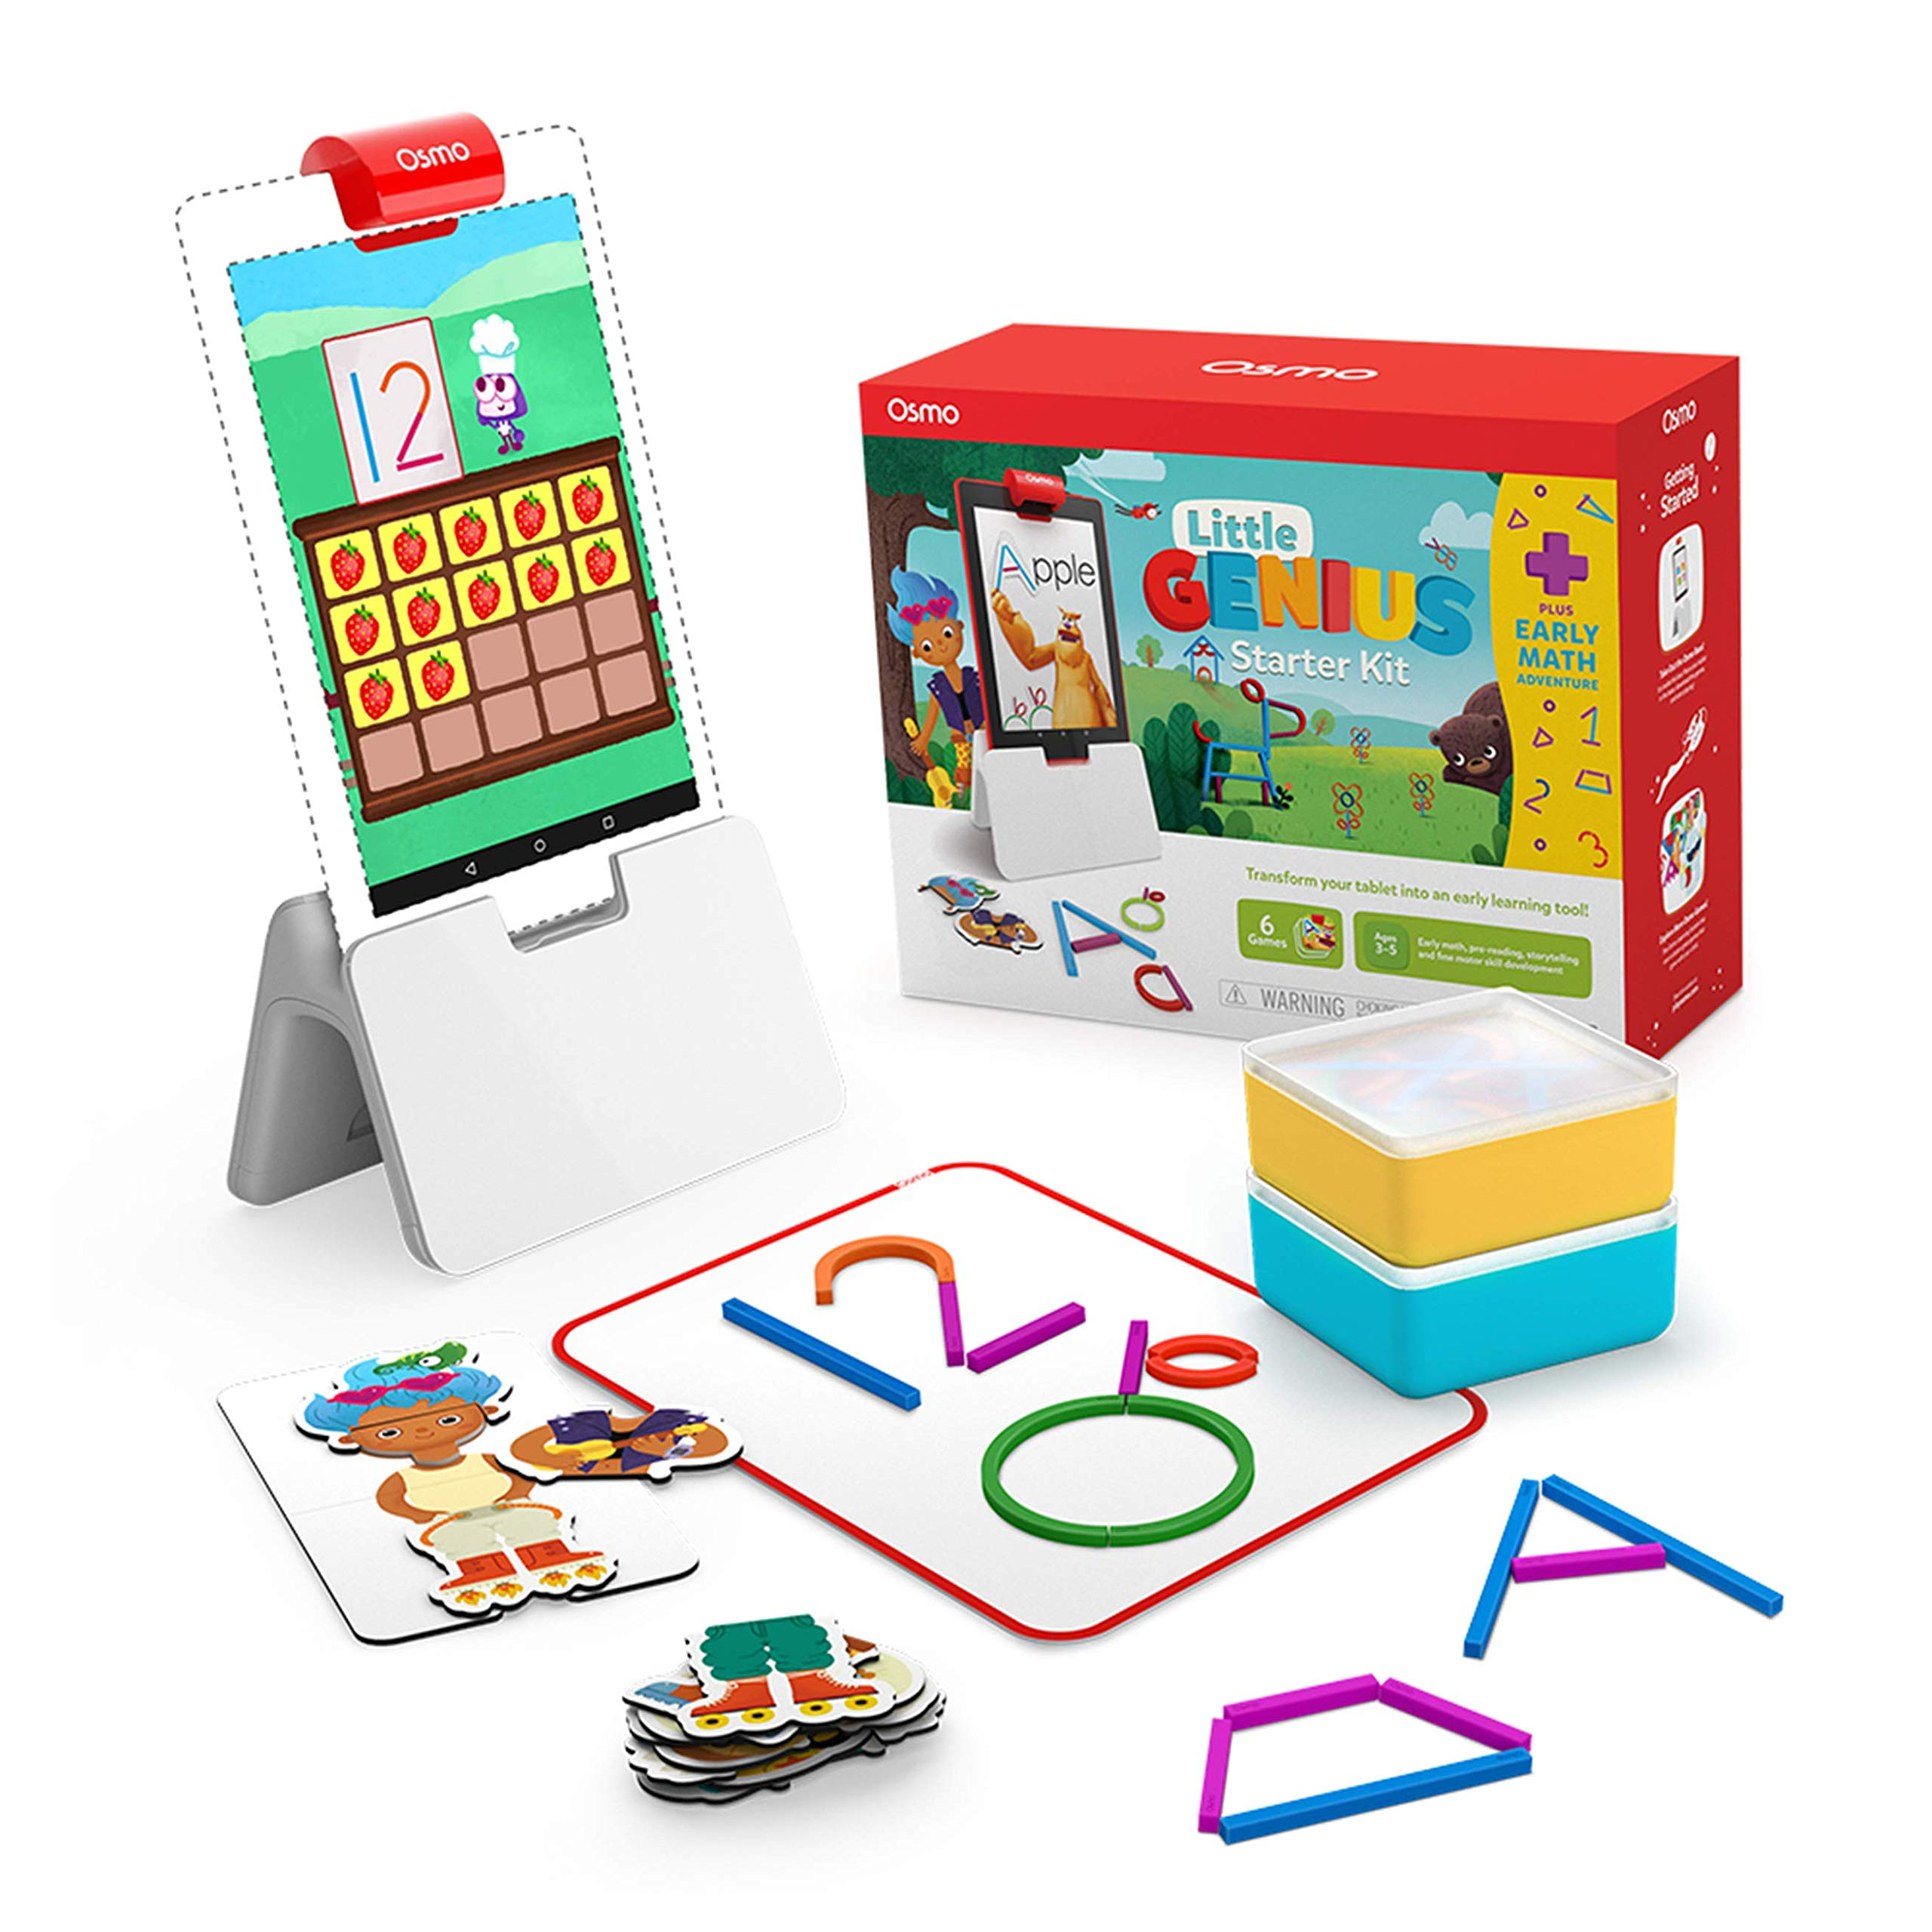 Osmo - Little Genius Starter Kit for Fire Tablet + Early Math Adventure - 6 Educational Games - Ages 3-5 - Counting…